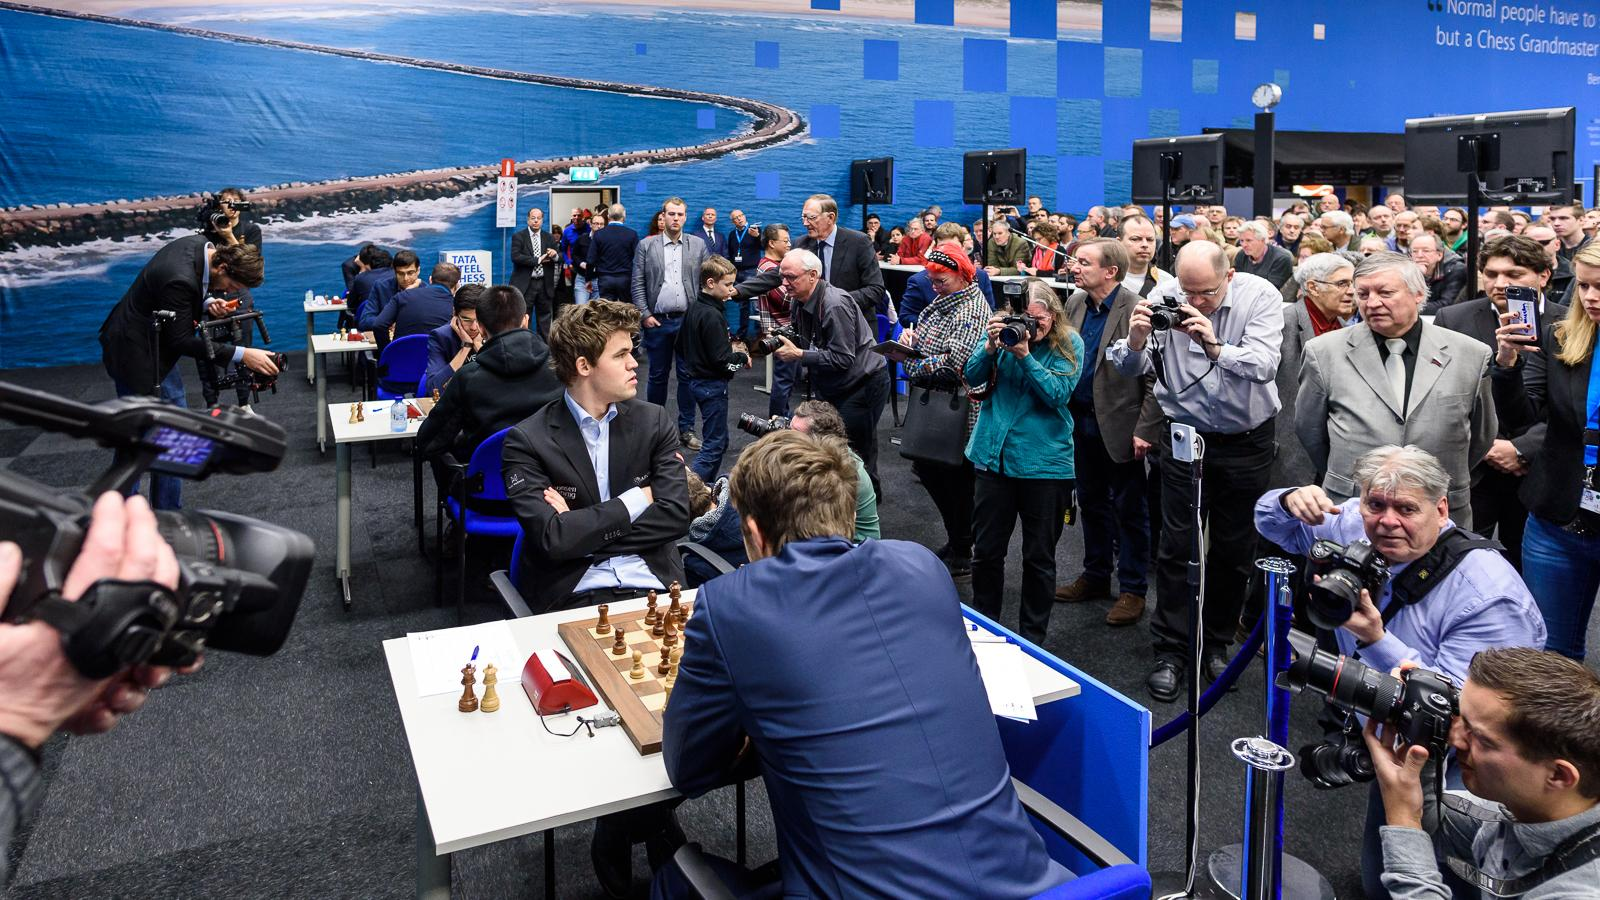 tata steel chess 2019 starts ecu rh europechess org chess 2019 tata chess 2019 champions showdown